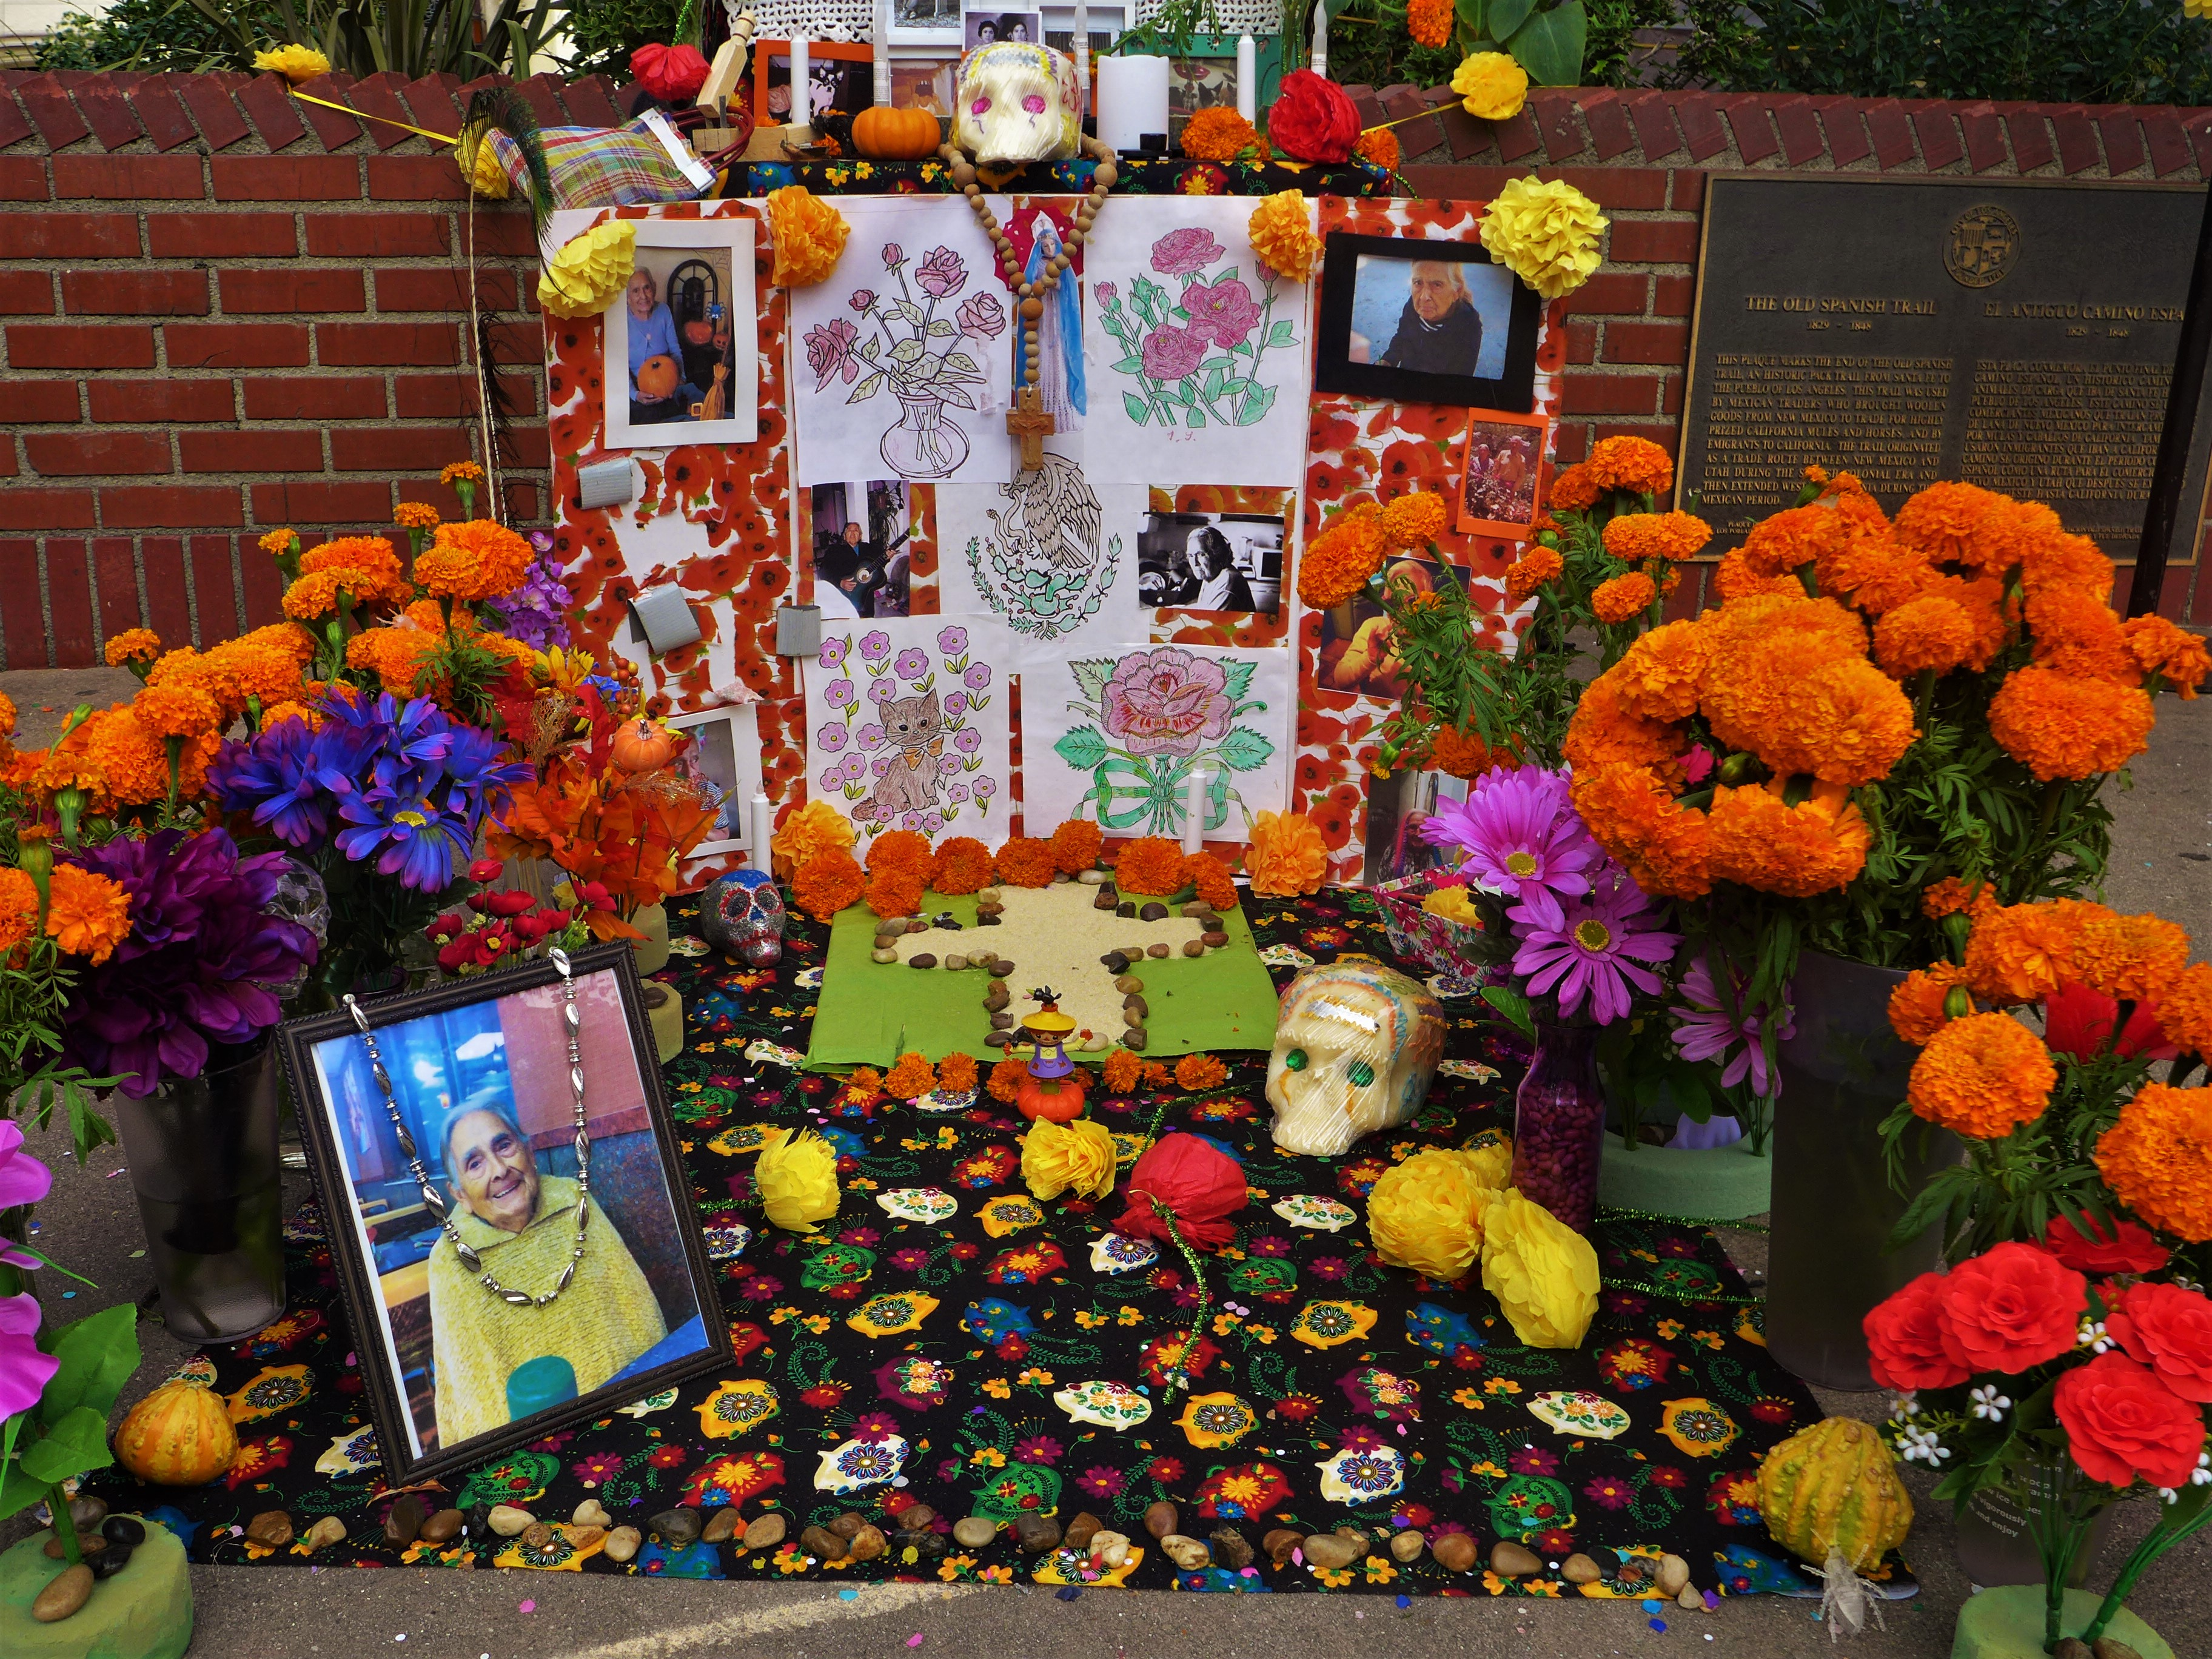 Day of the Dead altars, Mexico traditions